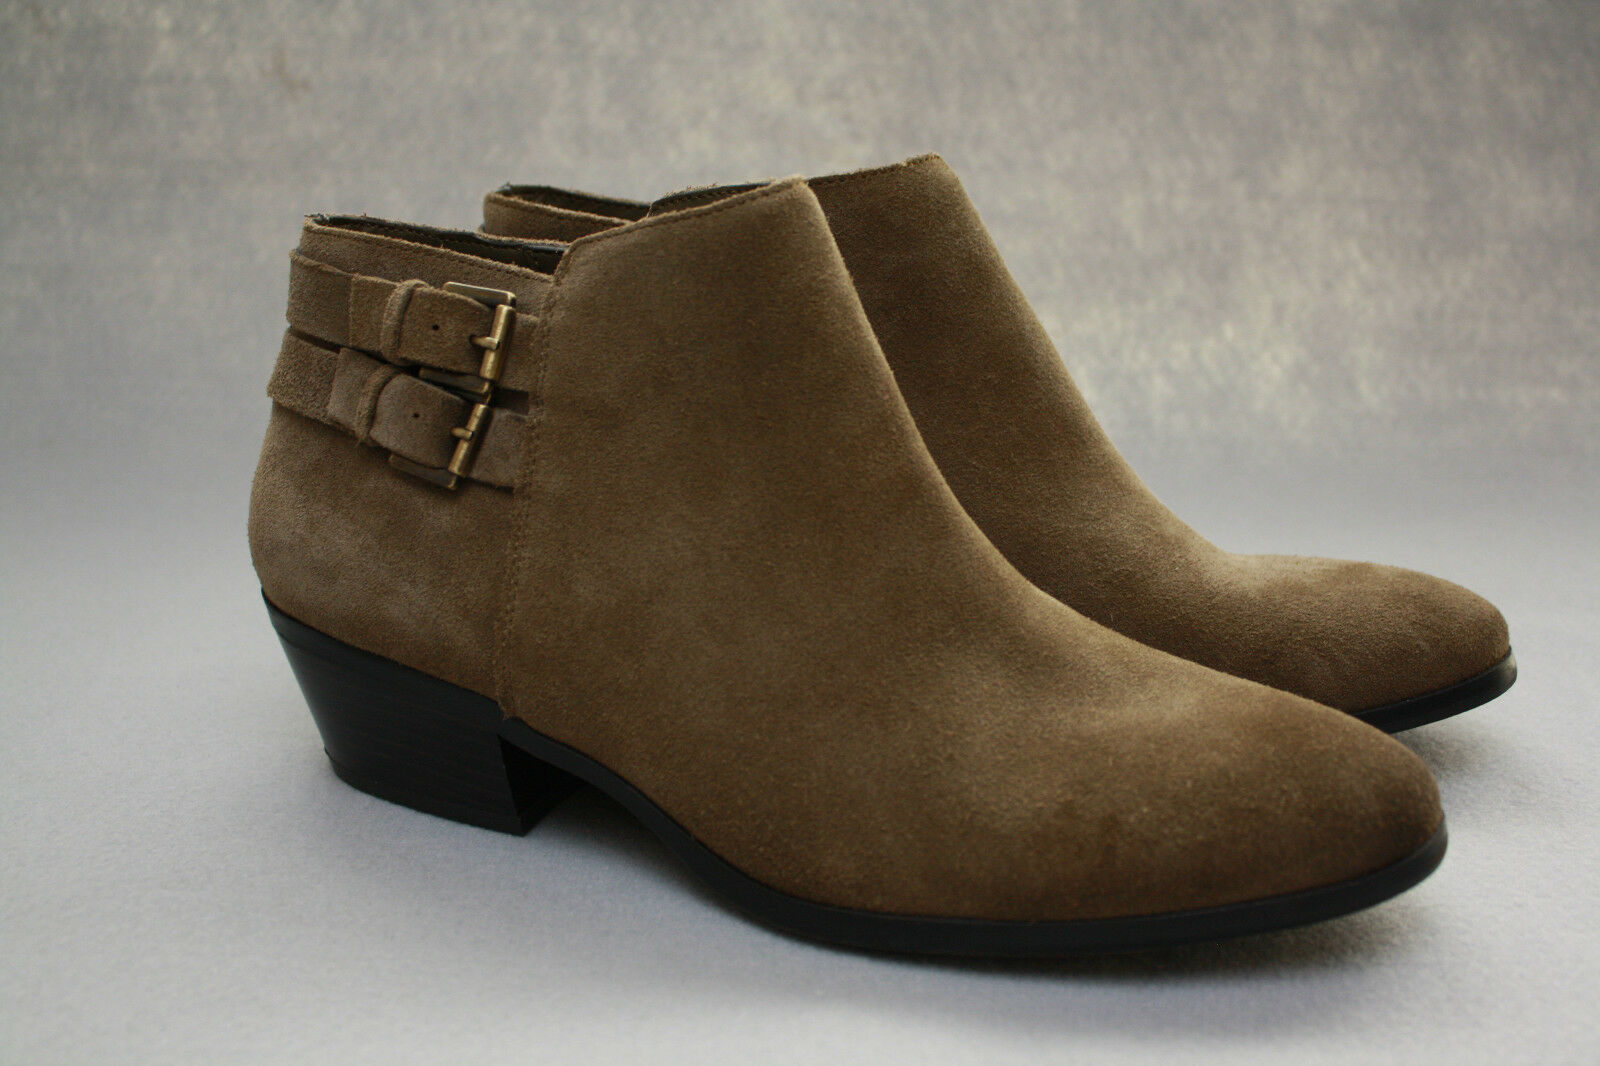 Sam Edelman Petal Booties Suede Ankle Boots in Olive Green Sz 10 NEW